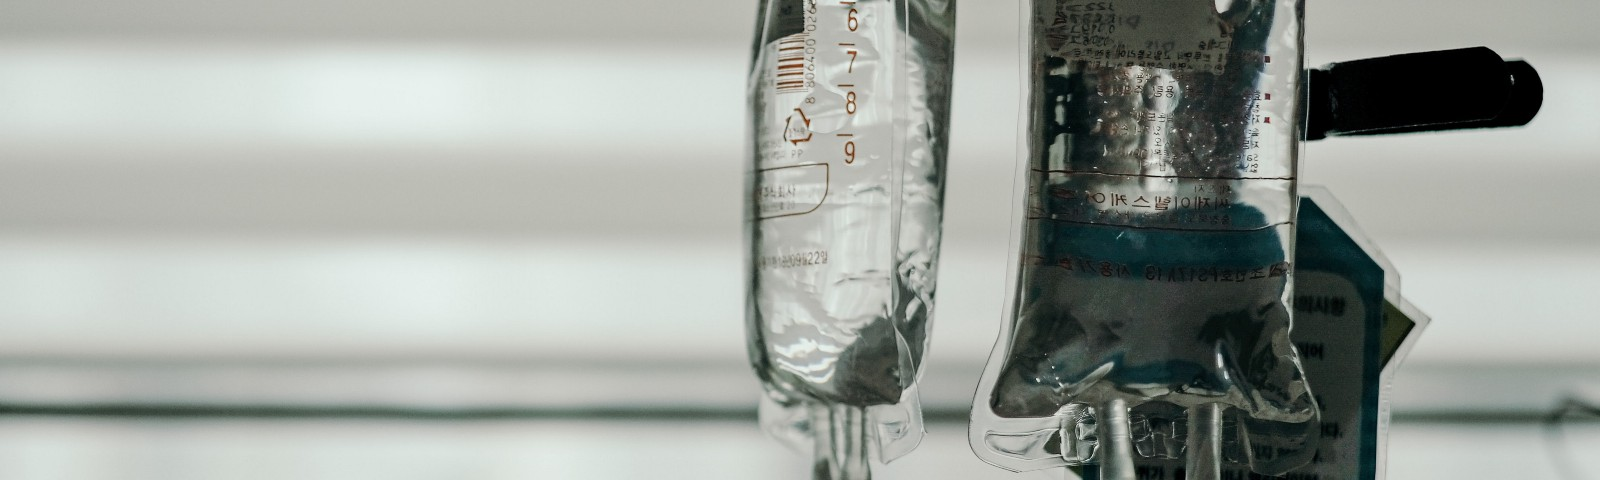 Black and white photo of intravenous fluid bags hanging on rack.